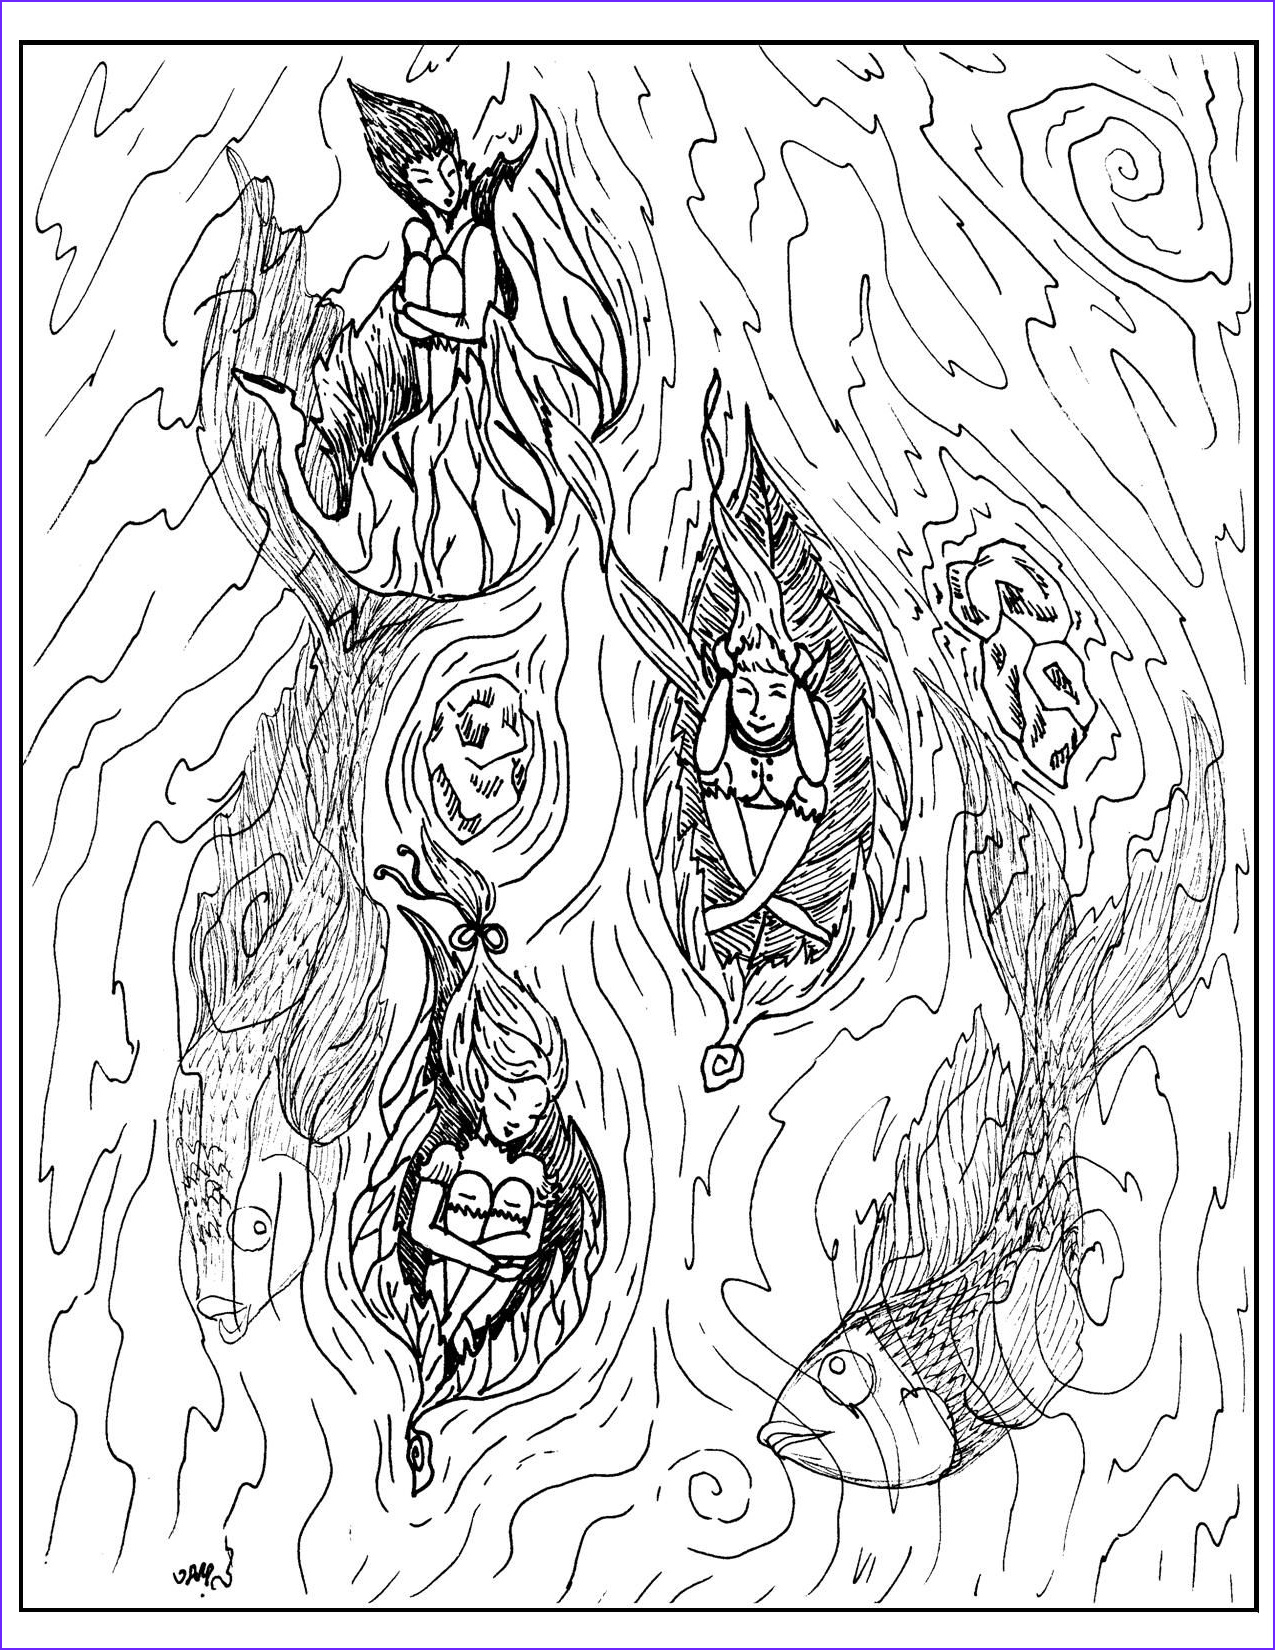 Fantasy Coloring Book Best Of Image Fantasy Coloring Pages S Mac S Place to Be